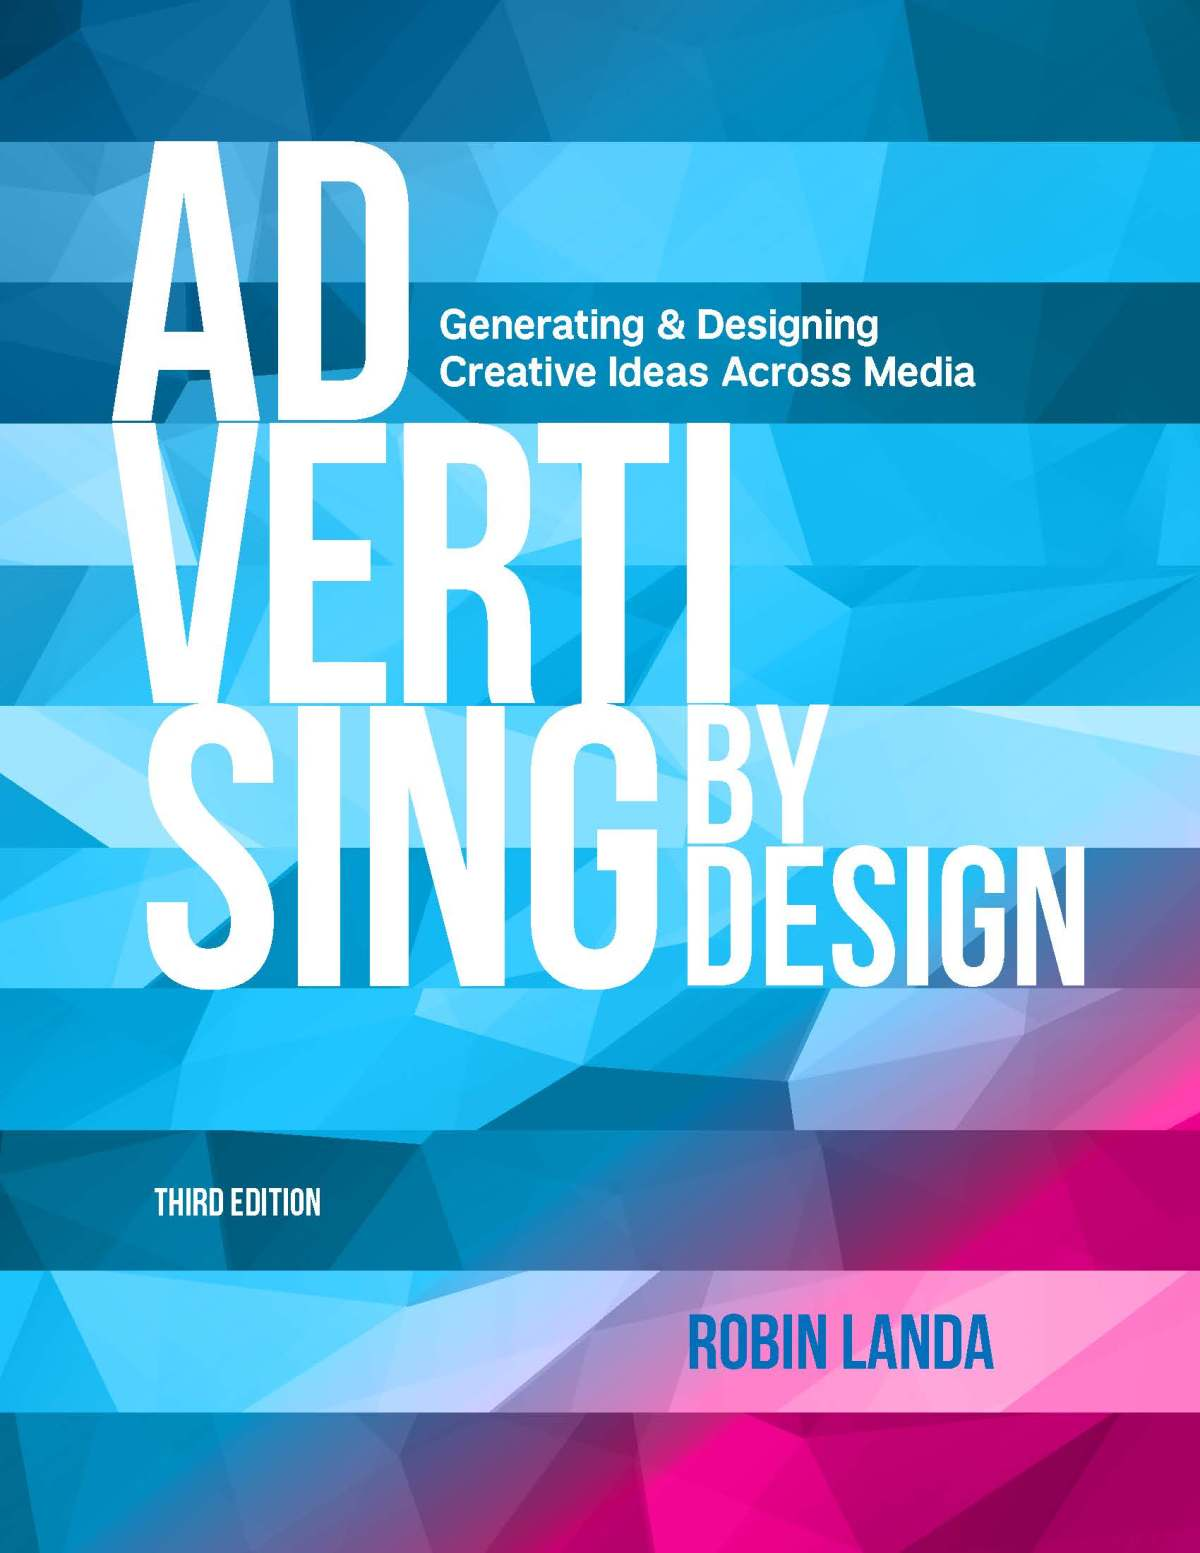 Teaching Design in the Age of Convergence